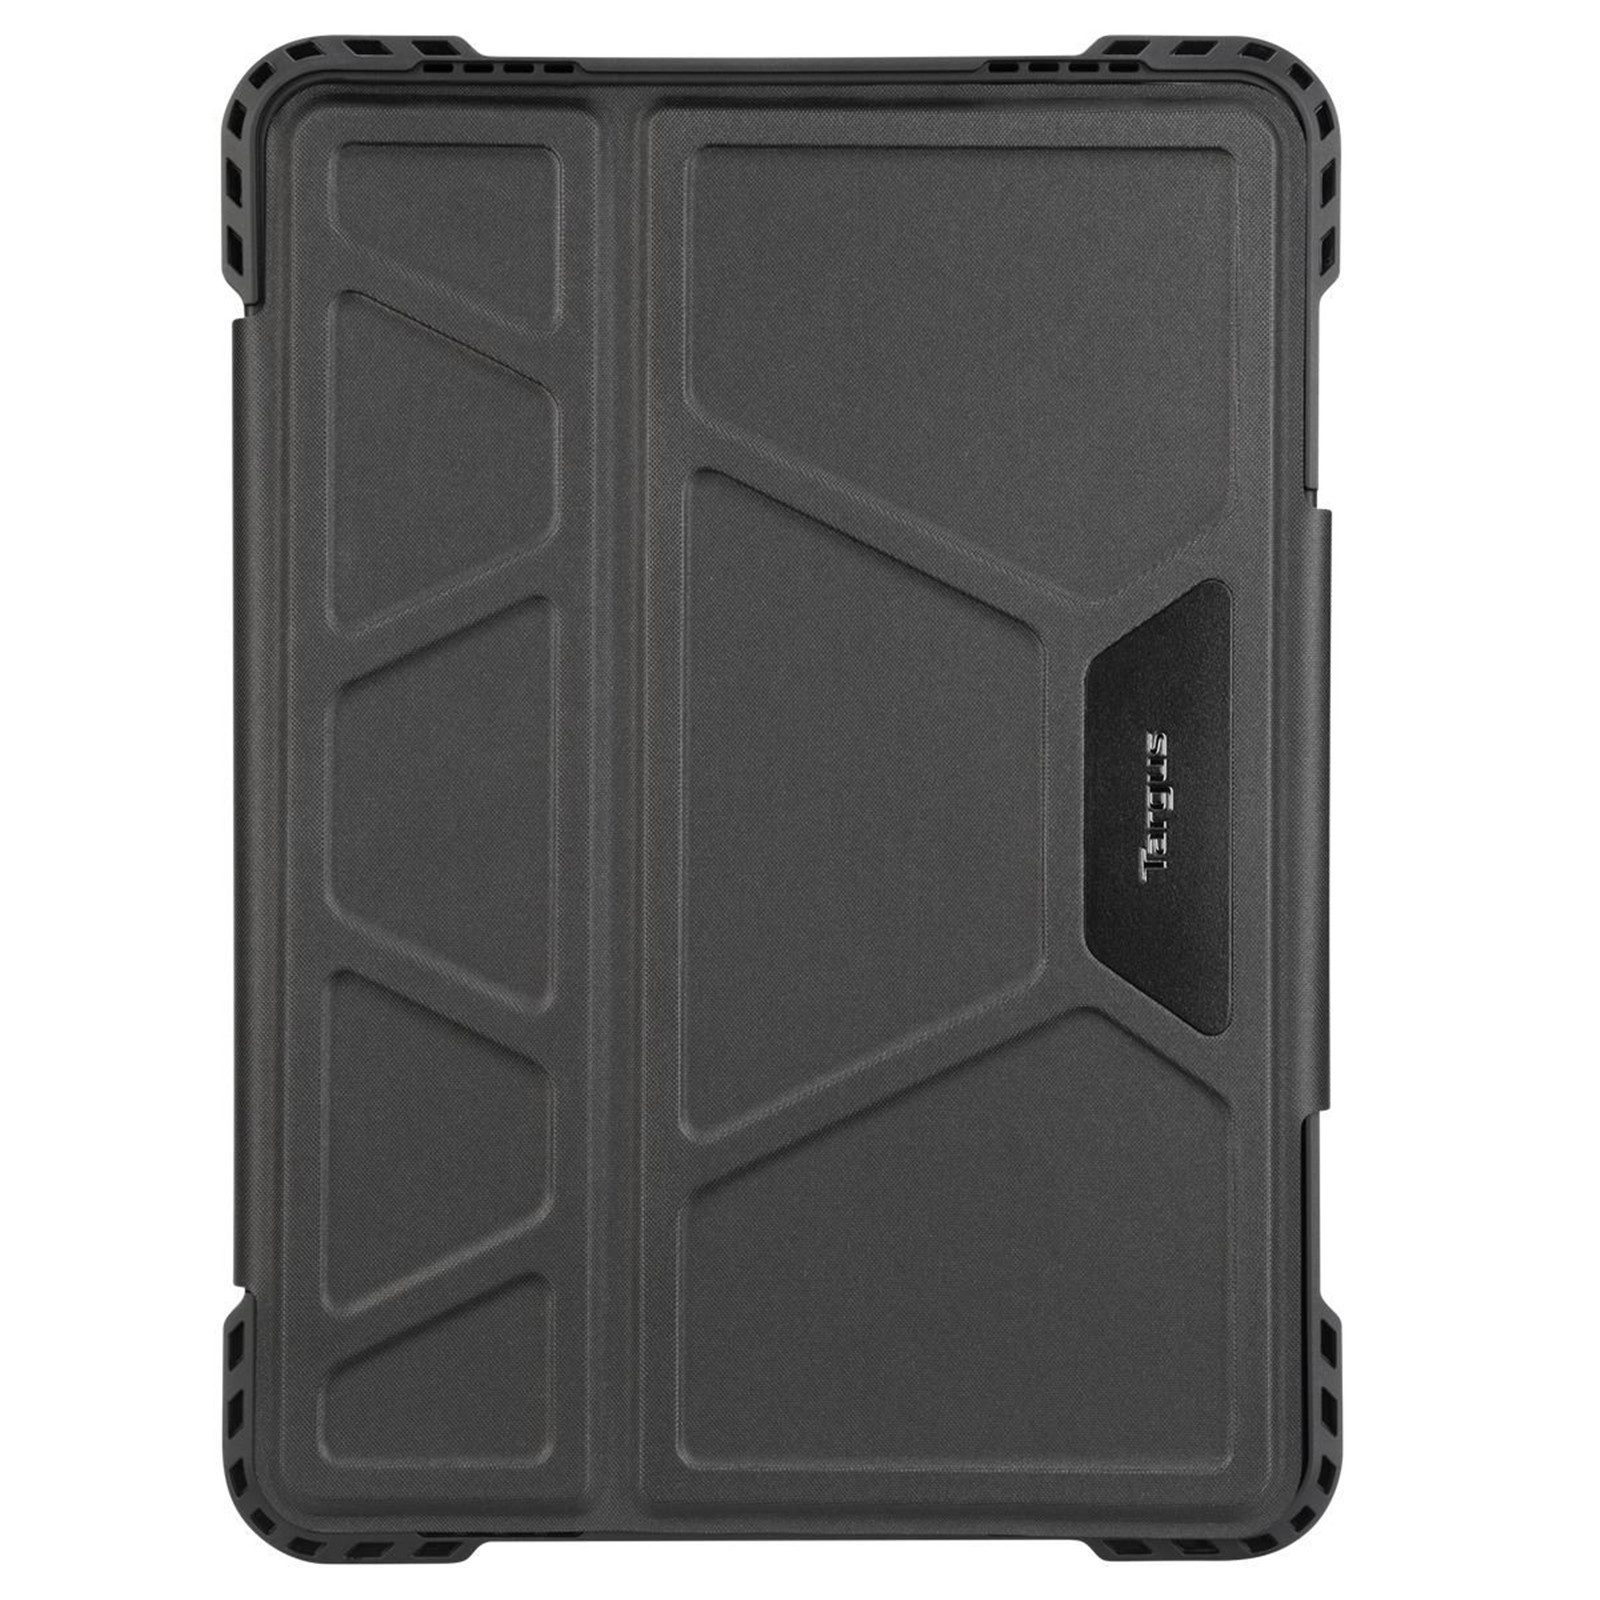 Buy the Targus Pro-Tek Rotation Case for iPad Pro 11